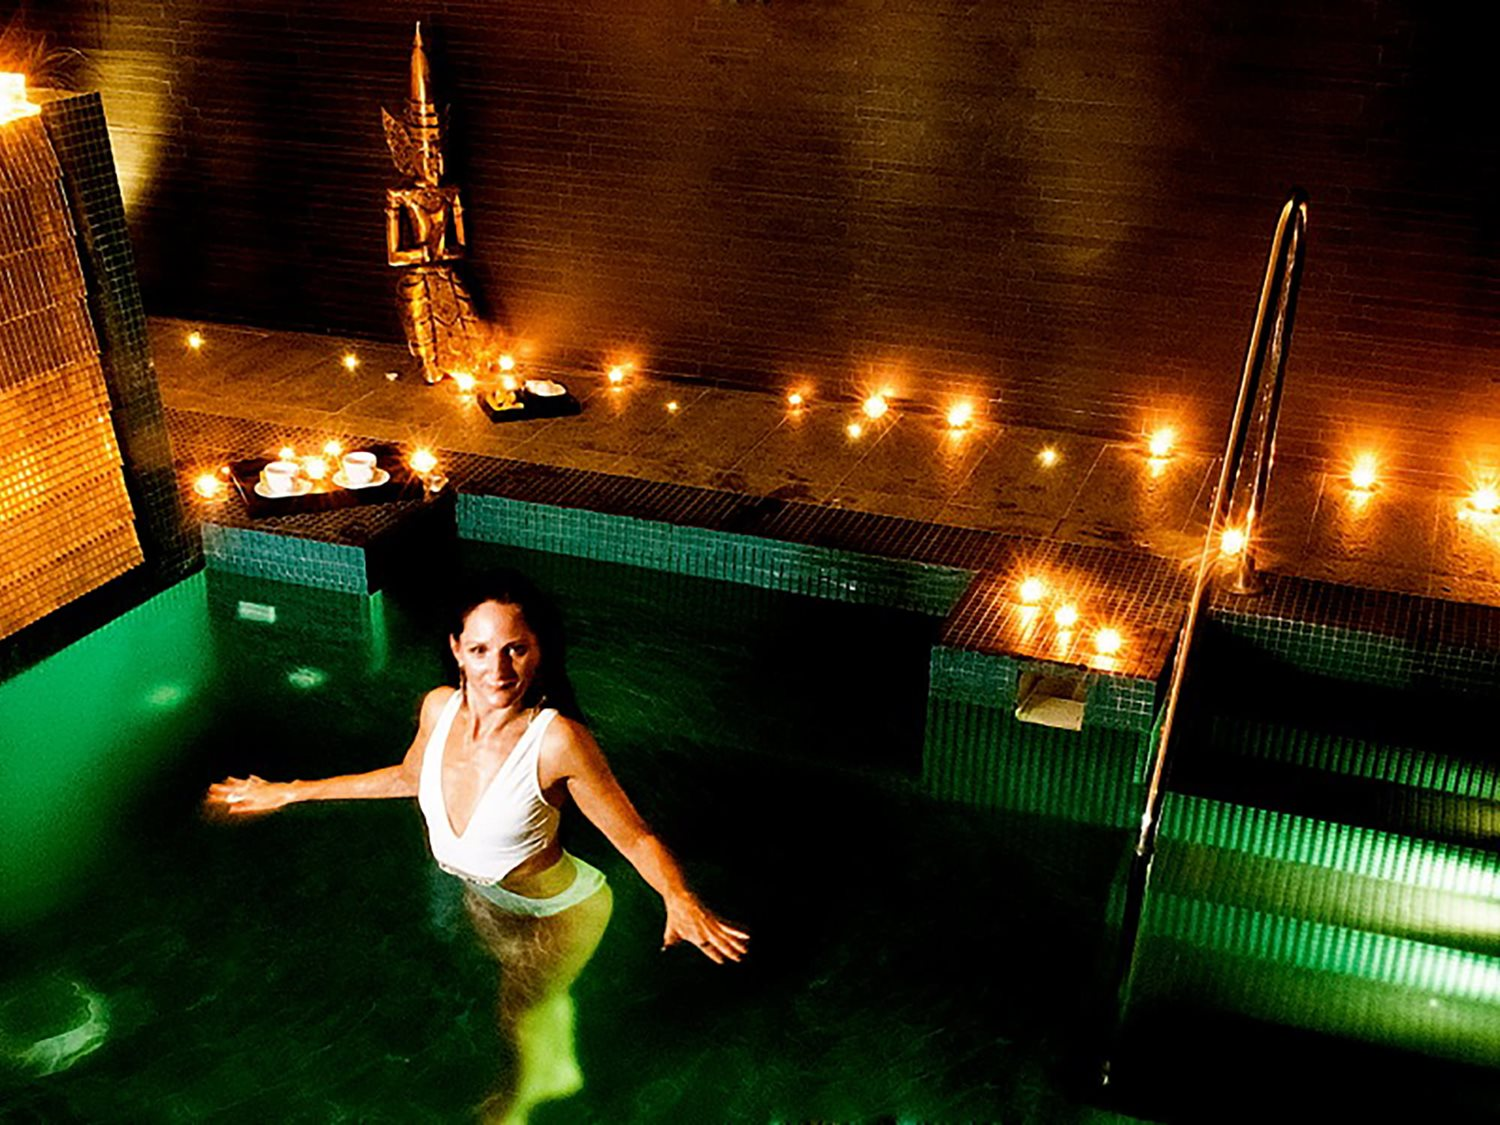 Relax in your own candlelit private pool